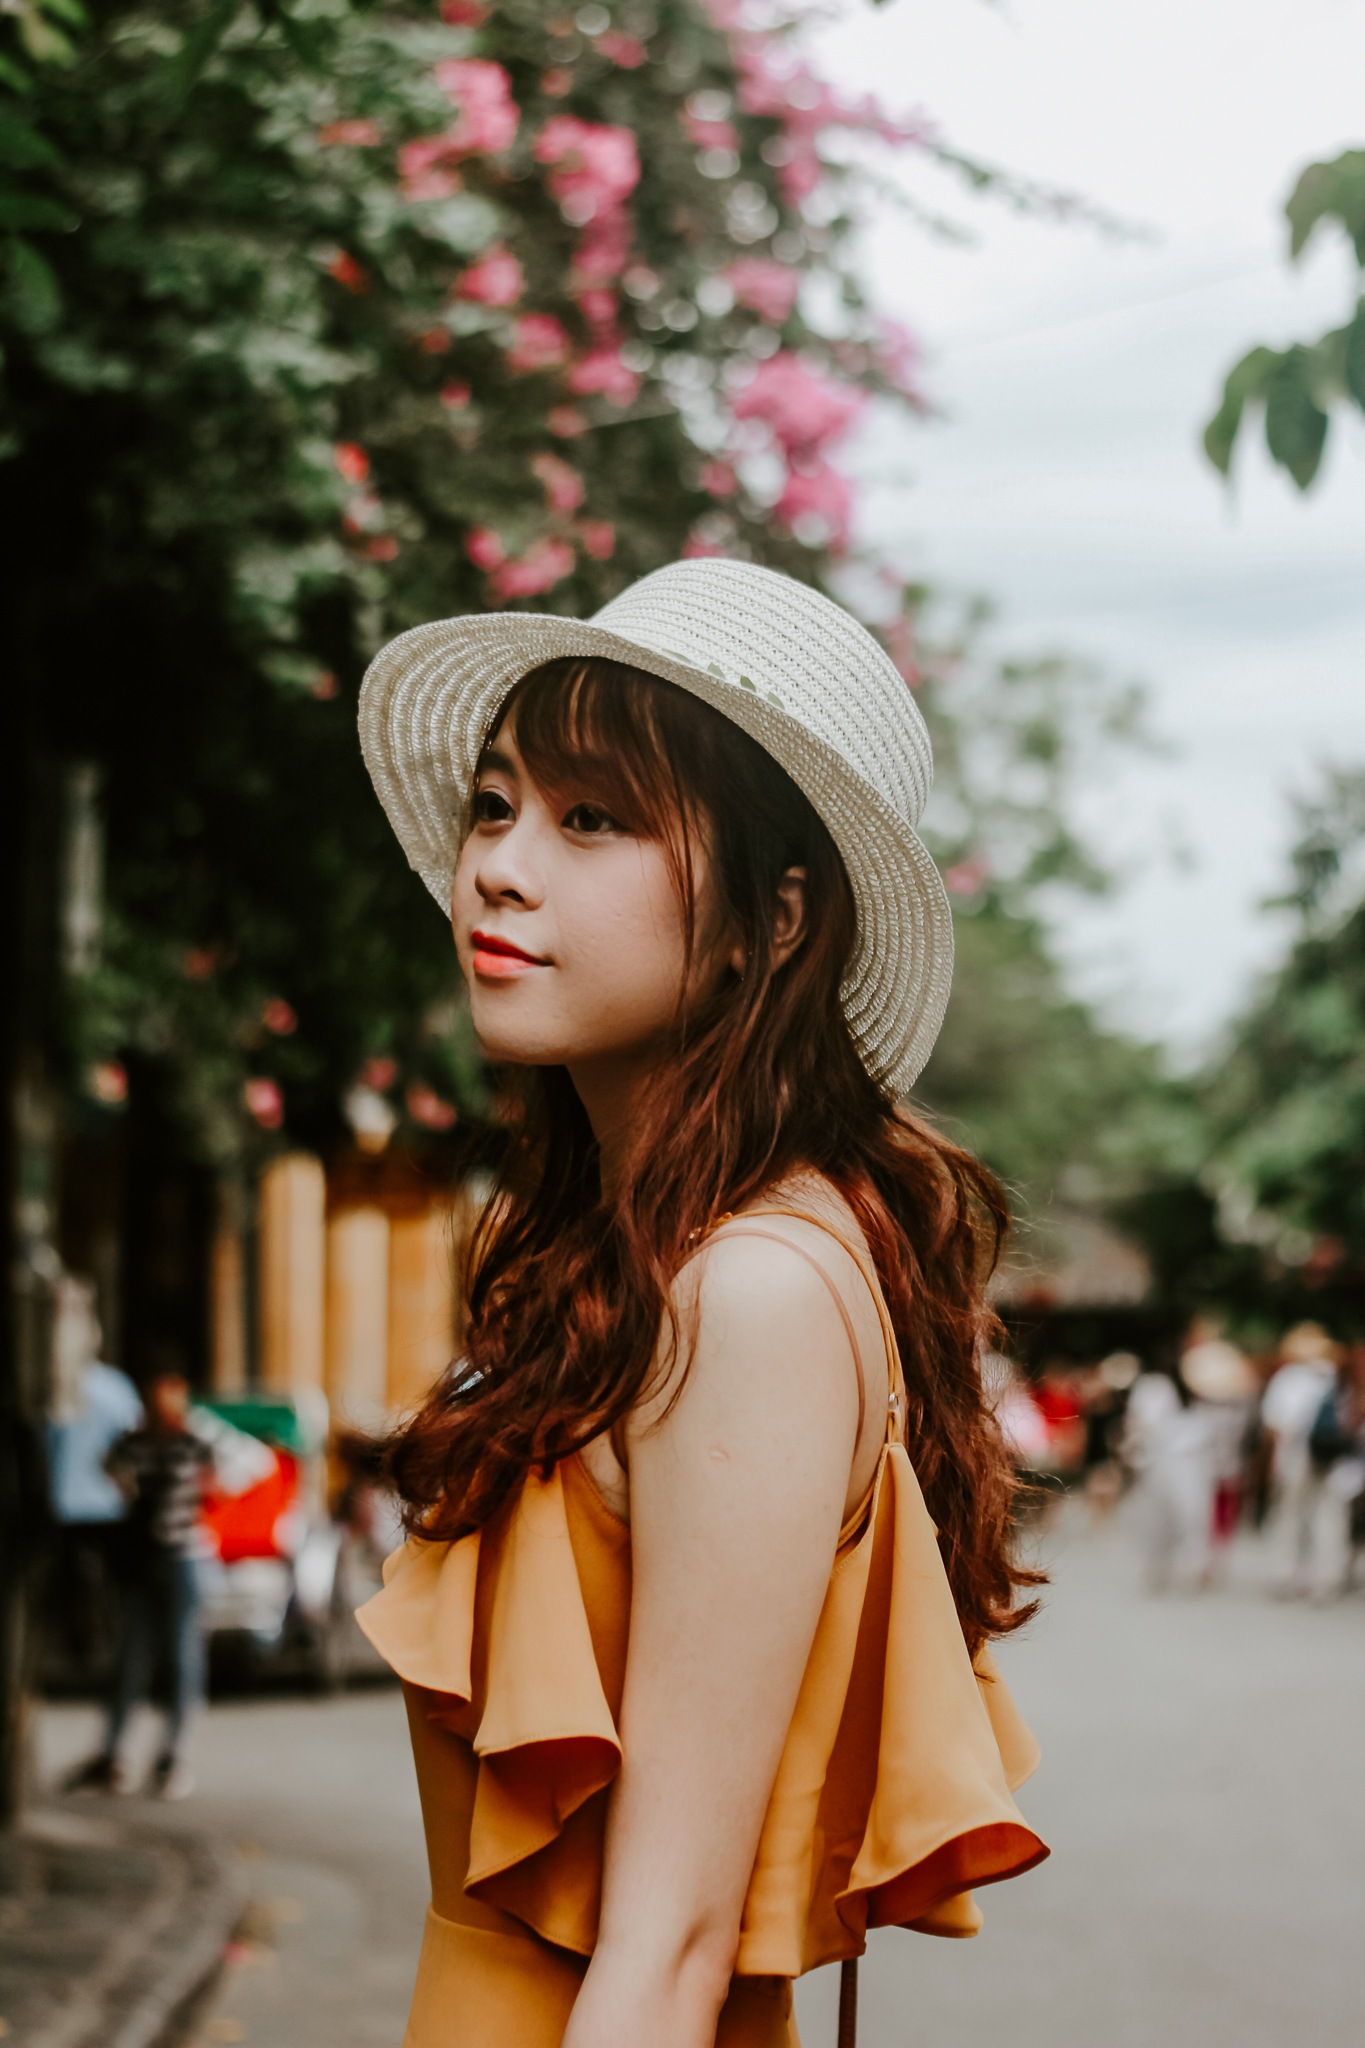 Meanwhile in Hoi An by Albus Ha